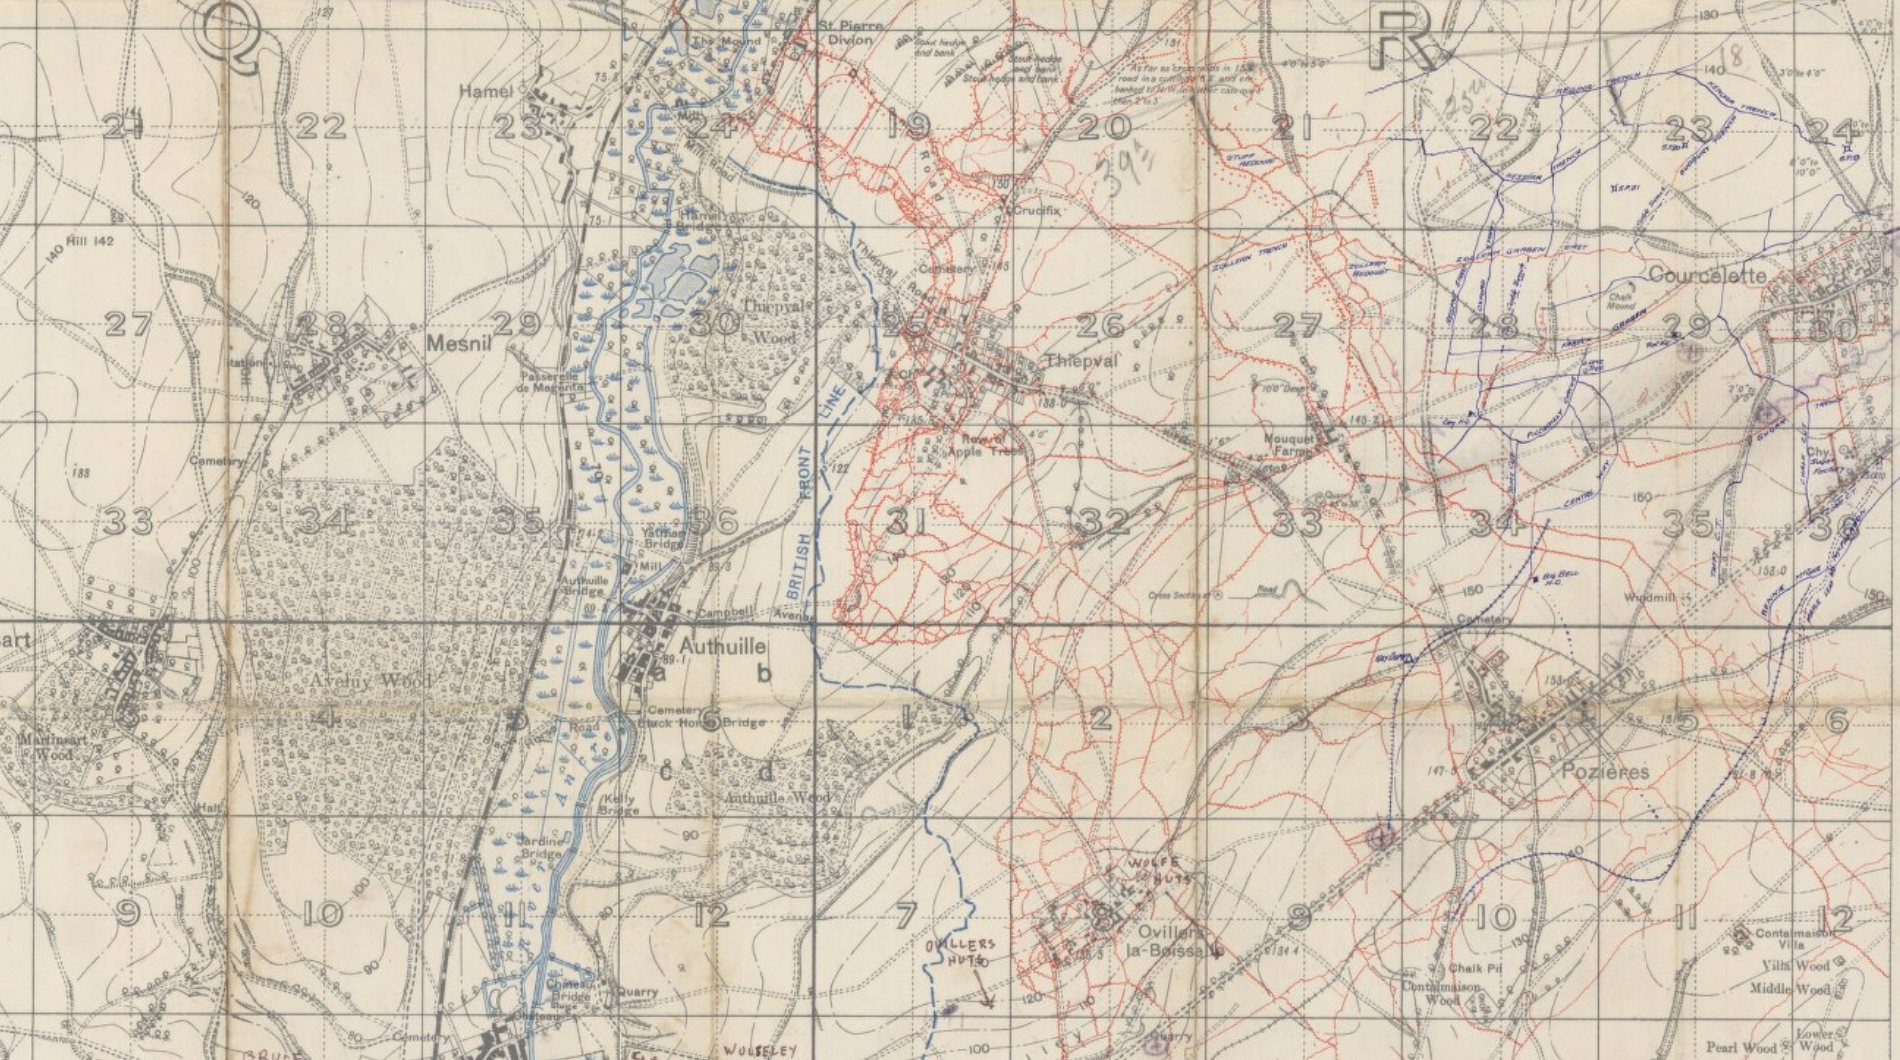 authille-ovillers-pozieres-courcelette